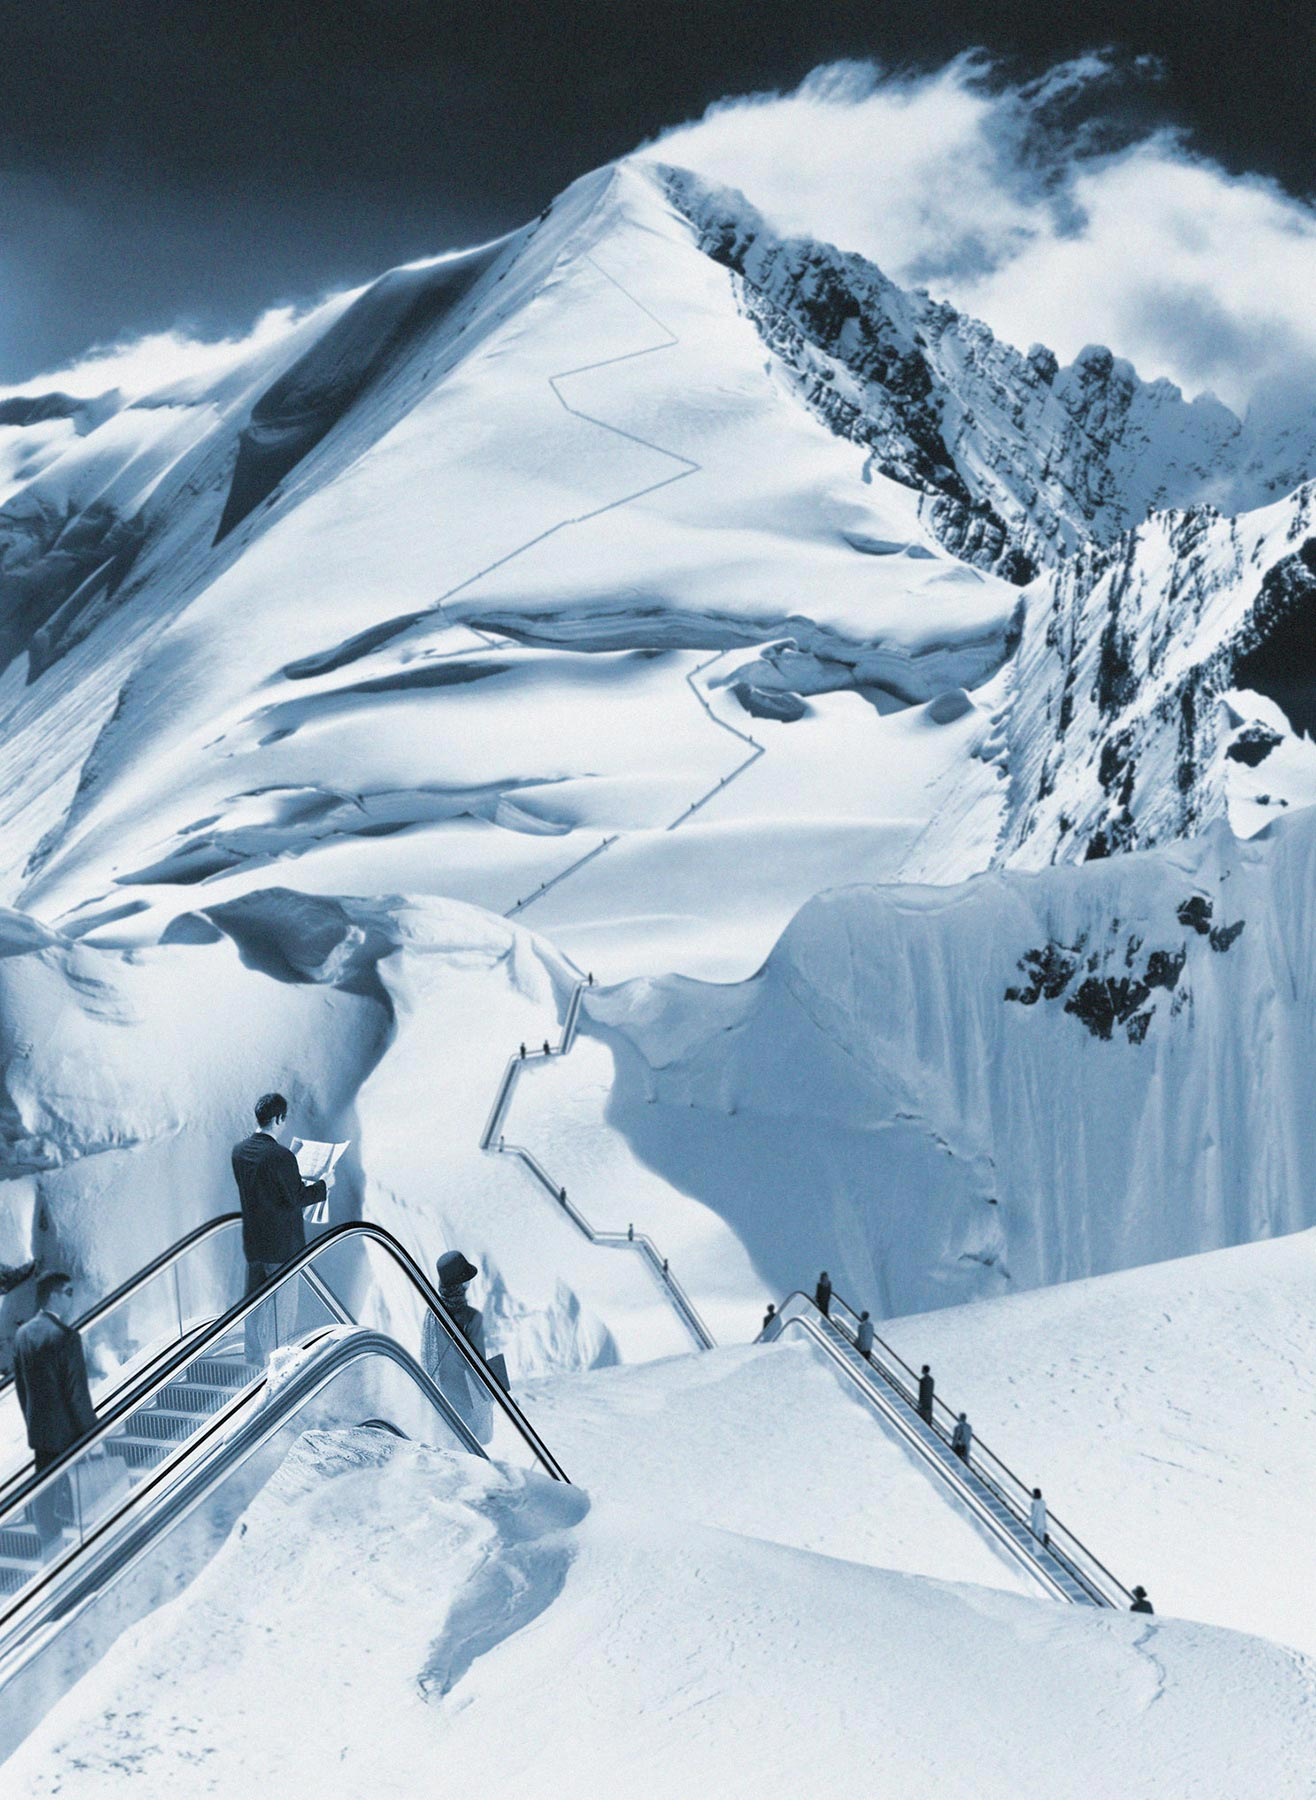 escalators-up-snowy-mountains